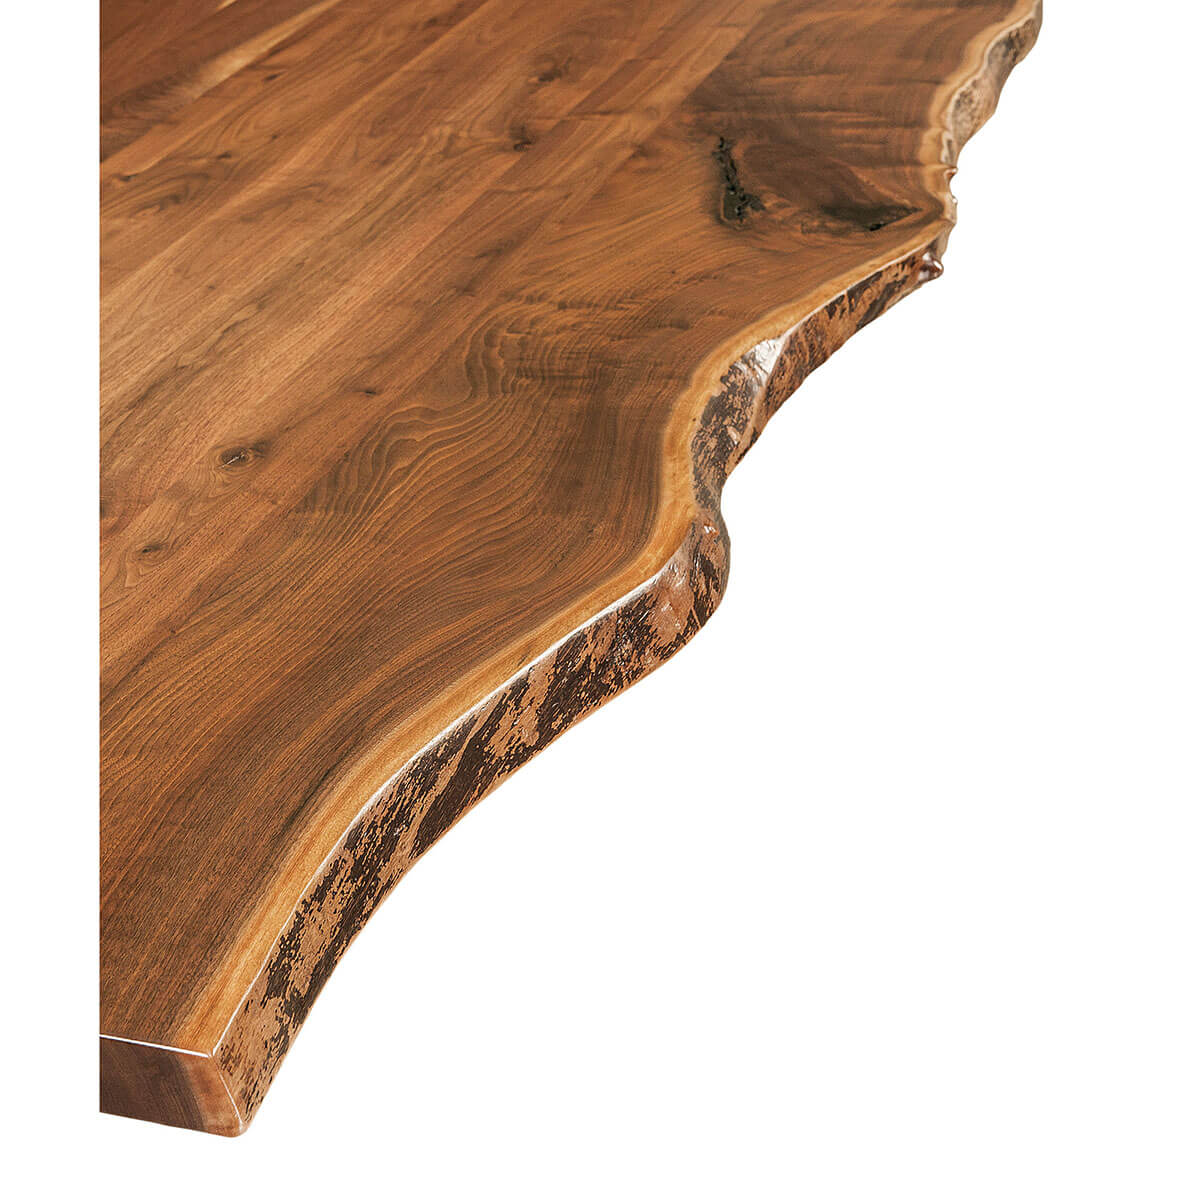 1.1-riovista-trestle-table-edge-detail.jpg